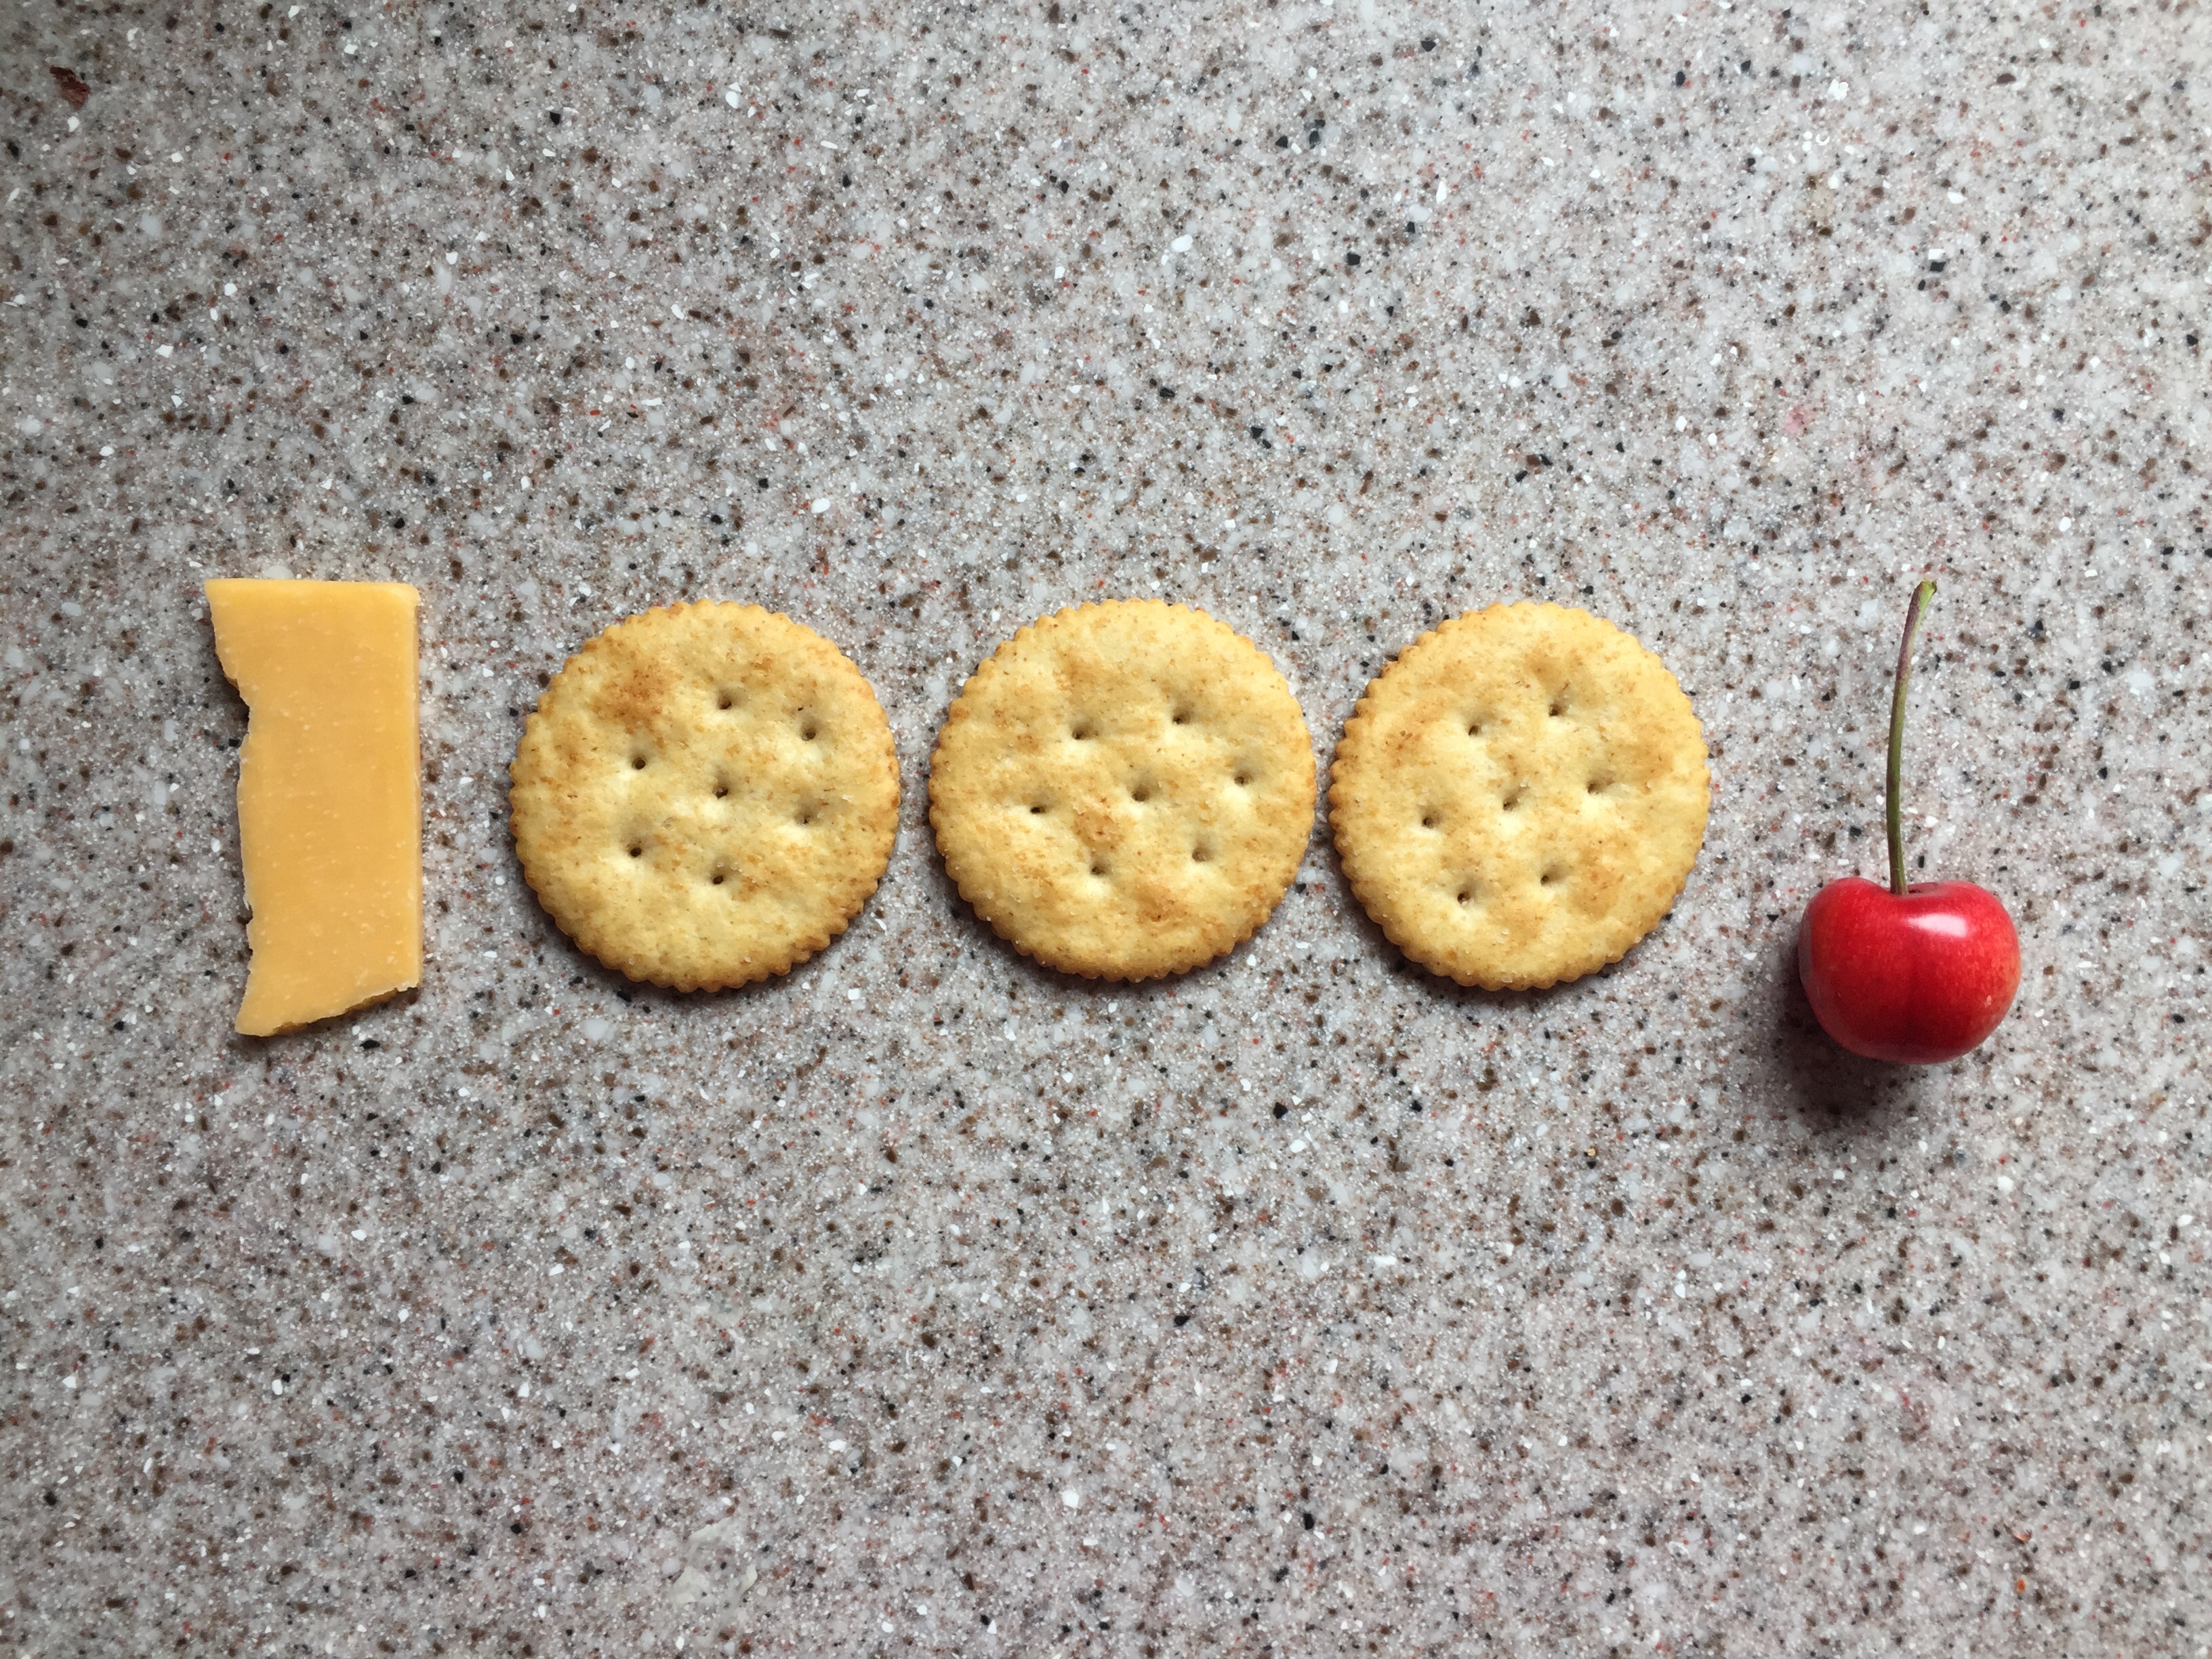 1000 number made from slice of cheese, round Ritz crackers, and a cherry for an exclamation mark